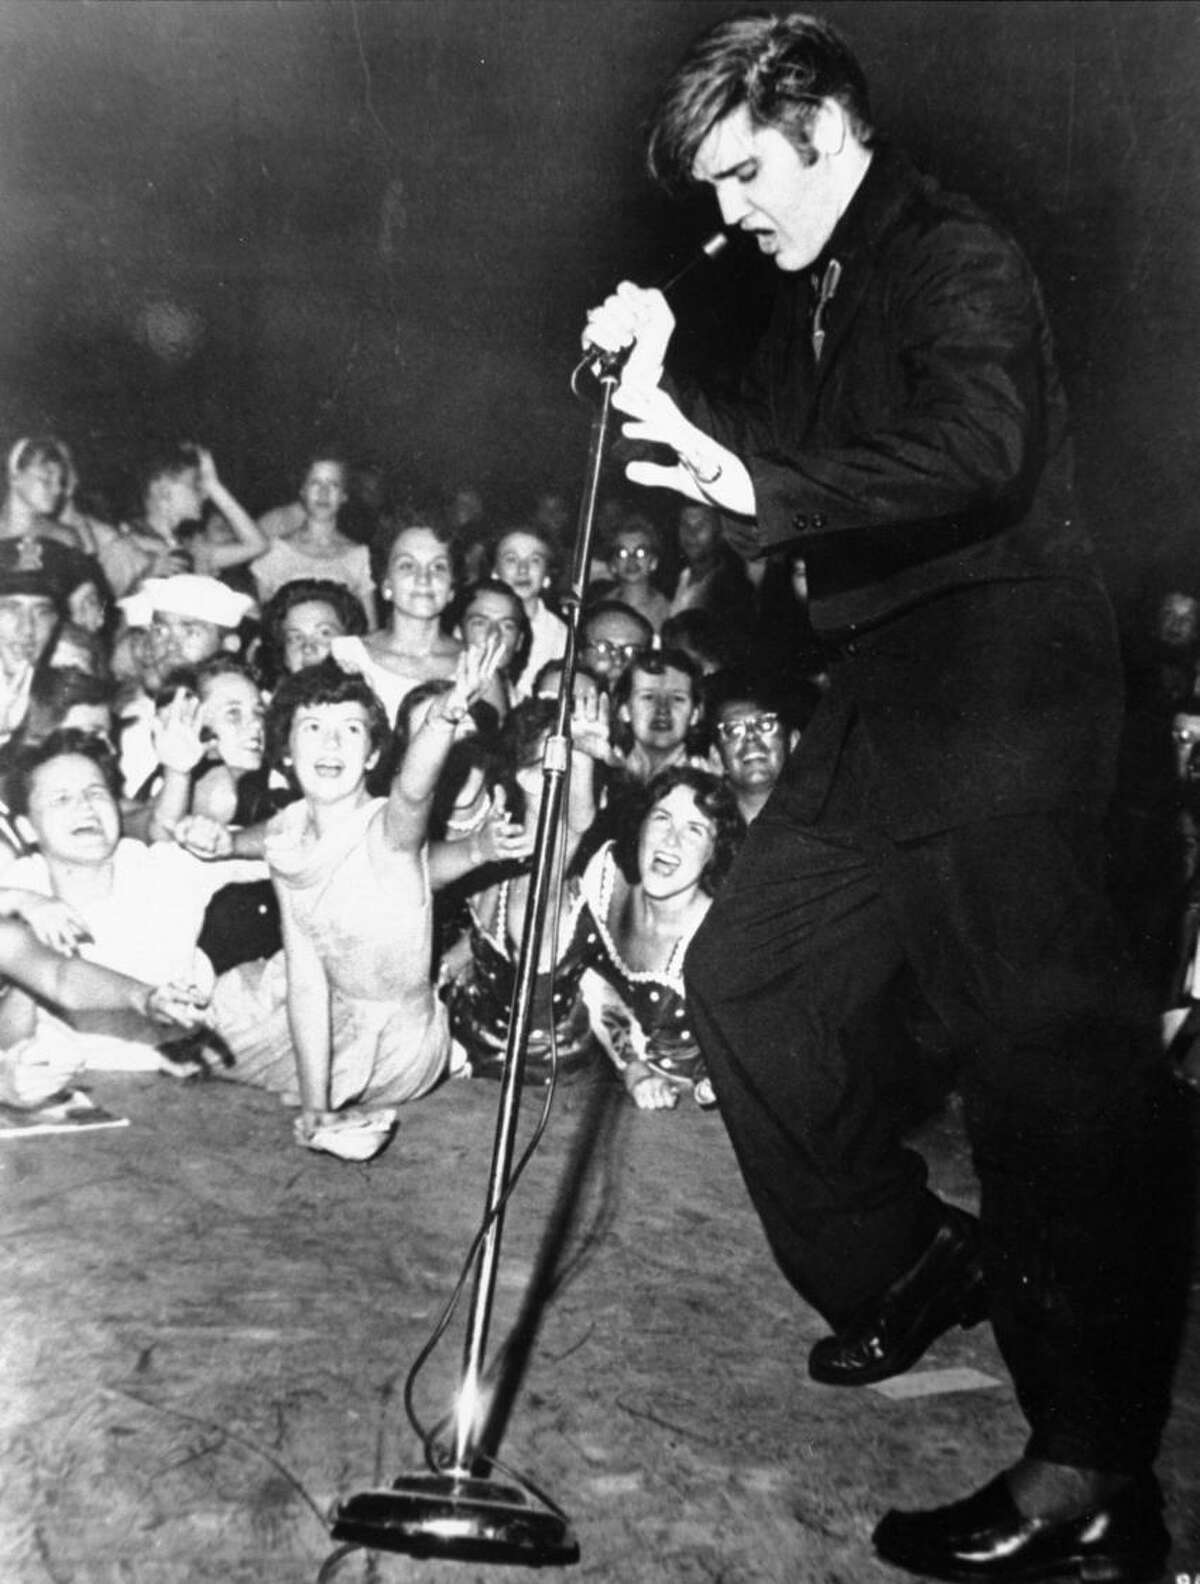 Elvis Presley shakes, rattles, and rolls as he performs at the Mississippi-Alabama State Fair, Tupelo, Mississippi, September 27, 1956. (AP Photo/RCA Victor)